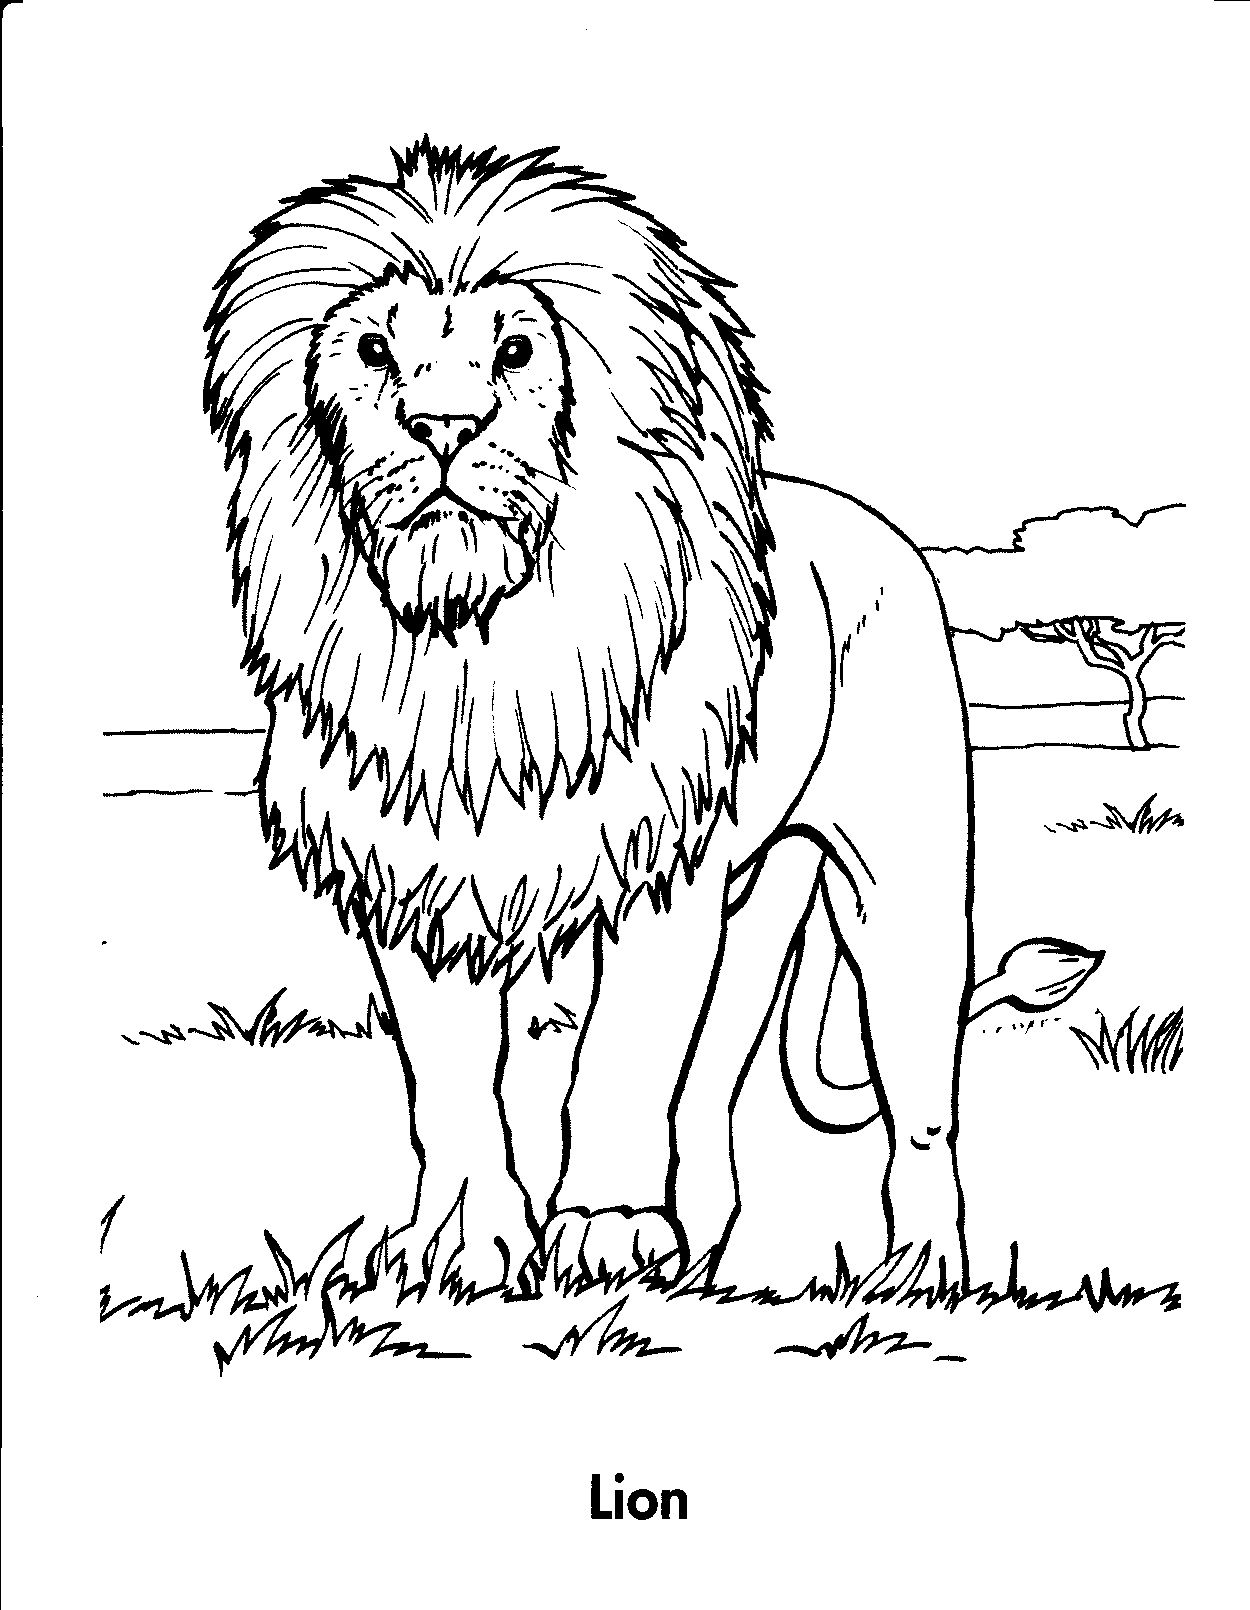 picture of a lion to color lion coloring pages coloring book coloring animals a picture to color lion of